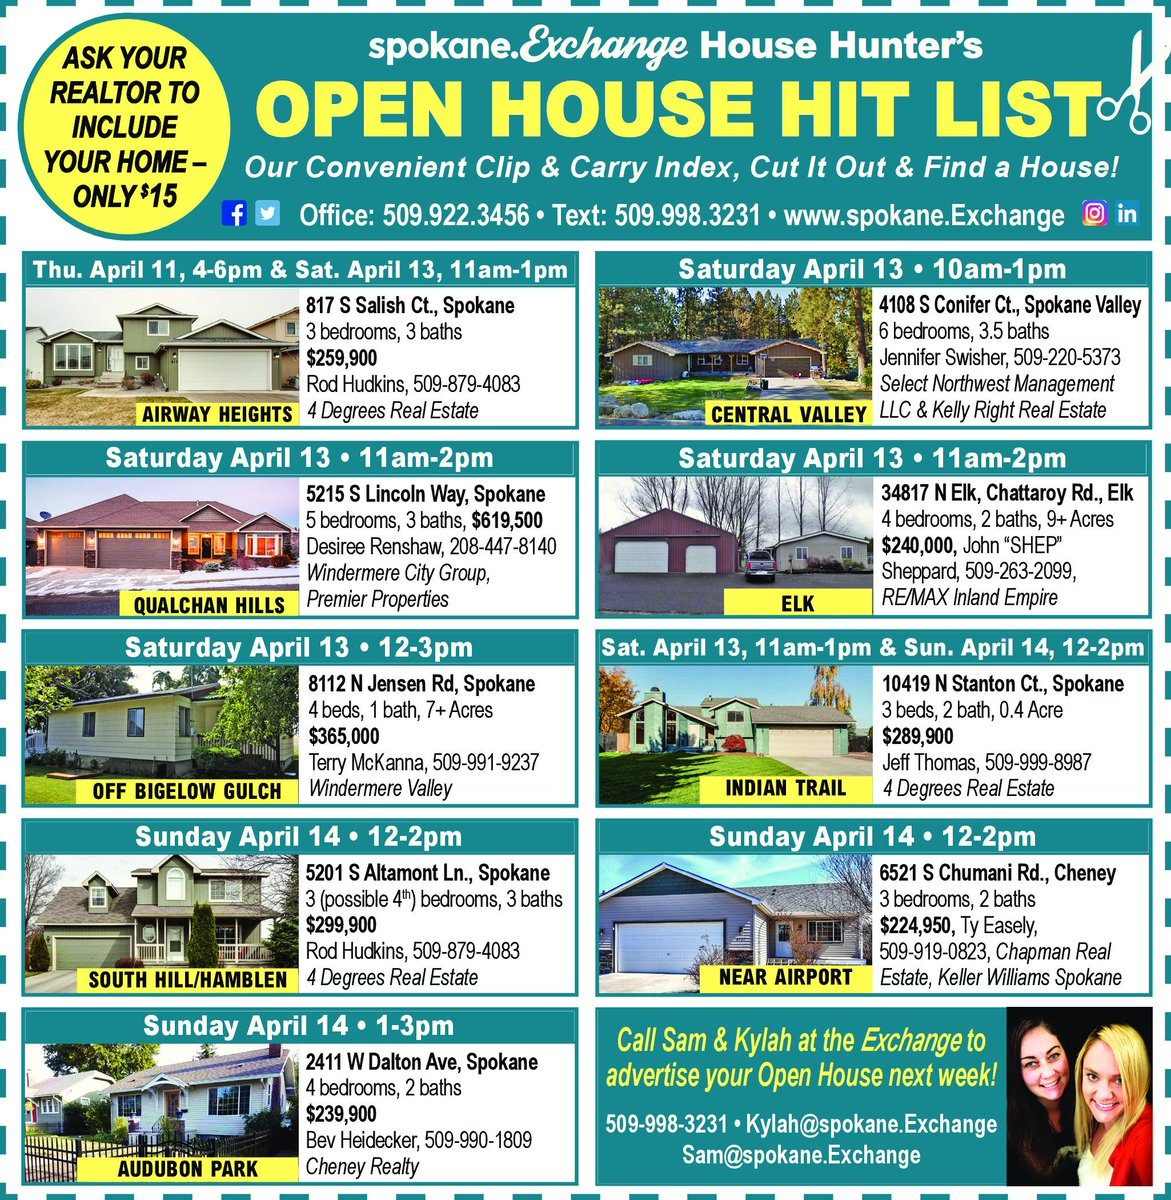 #Househunters looks like you&#39;ve got a busy weekend a head of you! Get a head start and check out the #AirwayHeights one tonight ! ---&gt;  http:// bit.ly/2vSKY7Q  &nbsp;    #spokane #realtor #spokanerealestate #realestate<br>http://pic.twitter.com/jscGMcdsIL